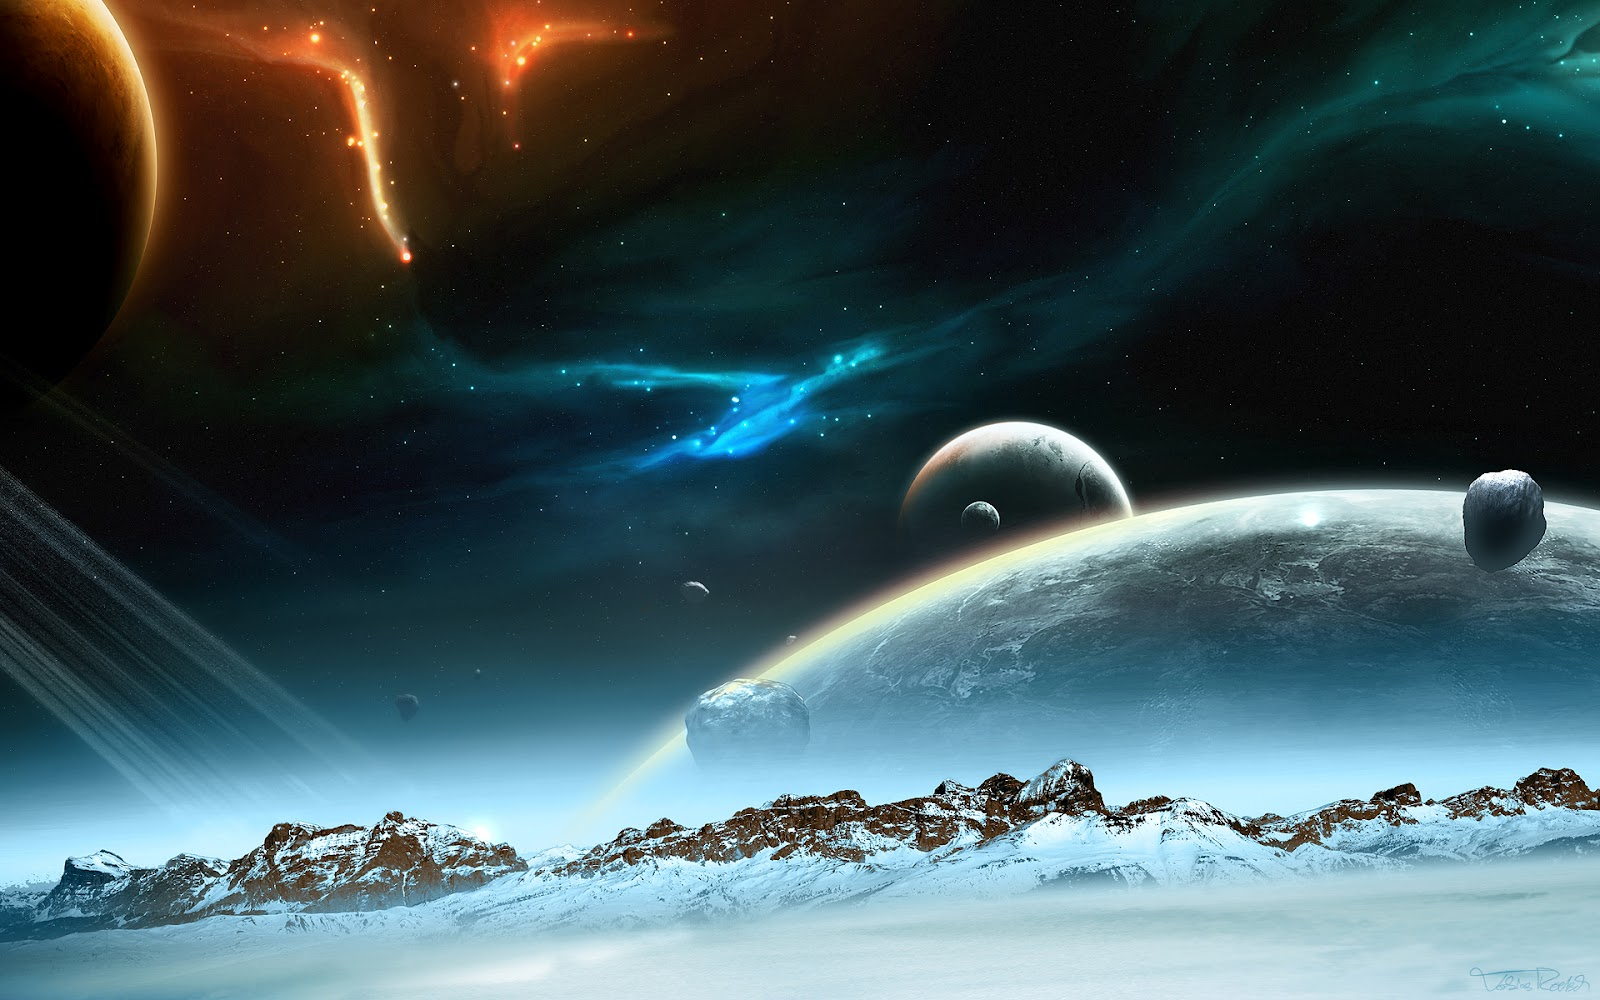 http://4.bp.blogspot.com/-QE0-x7Y8YIc/T9hJM6Zt-dI/AAAAAAAABPY/rZzJBehQD9k/s1600/6804_1_miscellaneous_digital_art_hd_wallpapers_planets_space.jpg